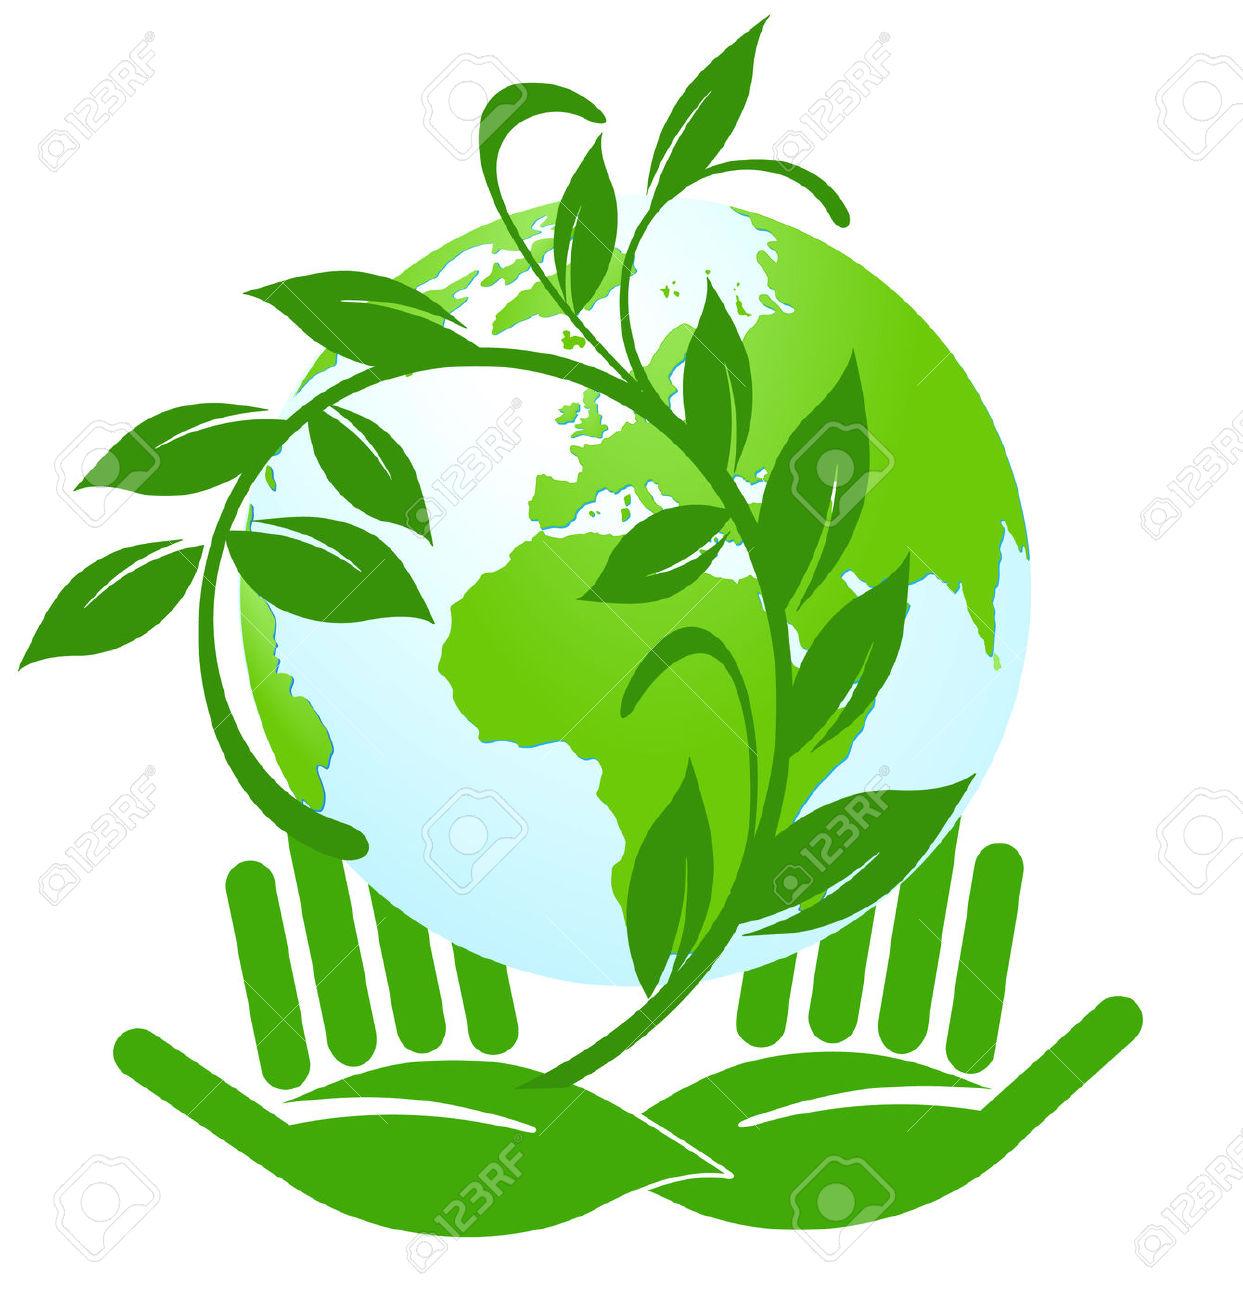 1243x1300 Climate Clipart 8196362 Eco Label Stock Vector Climate Change